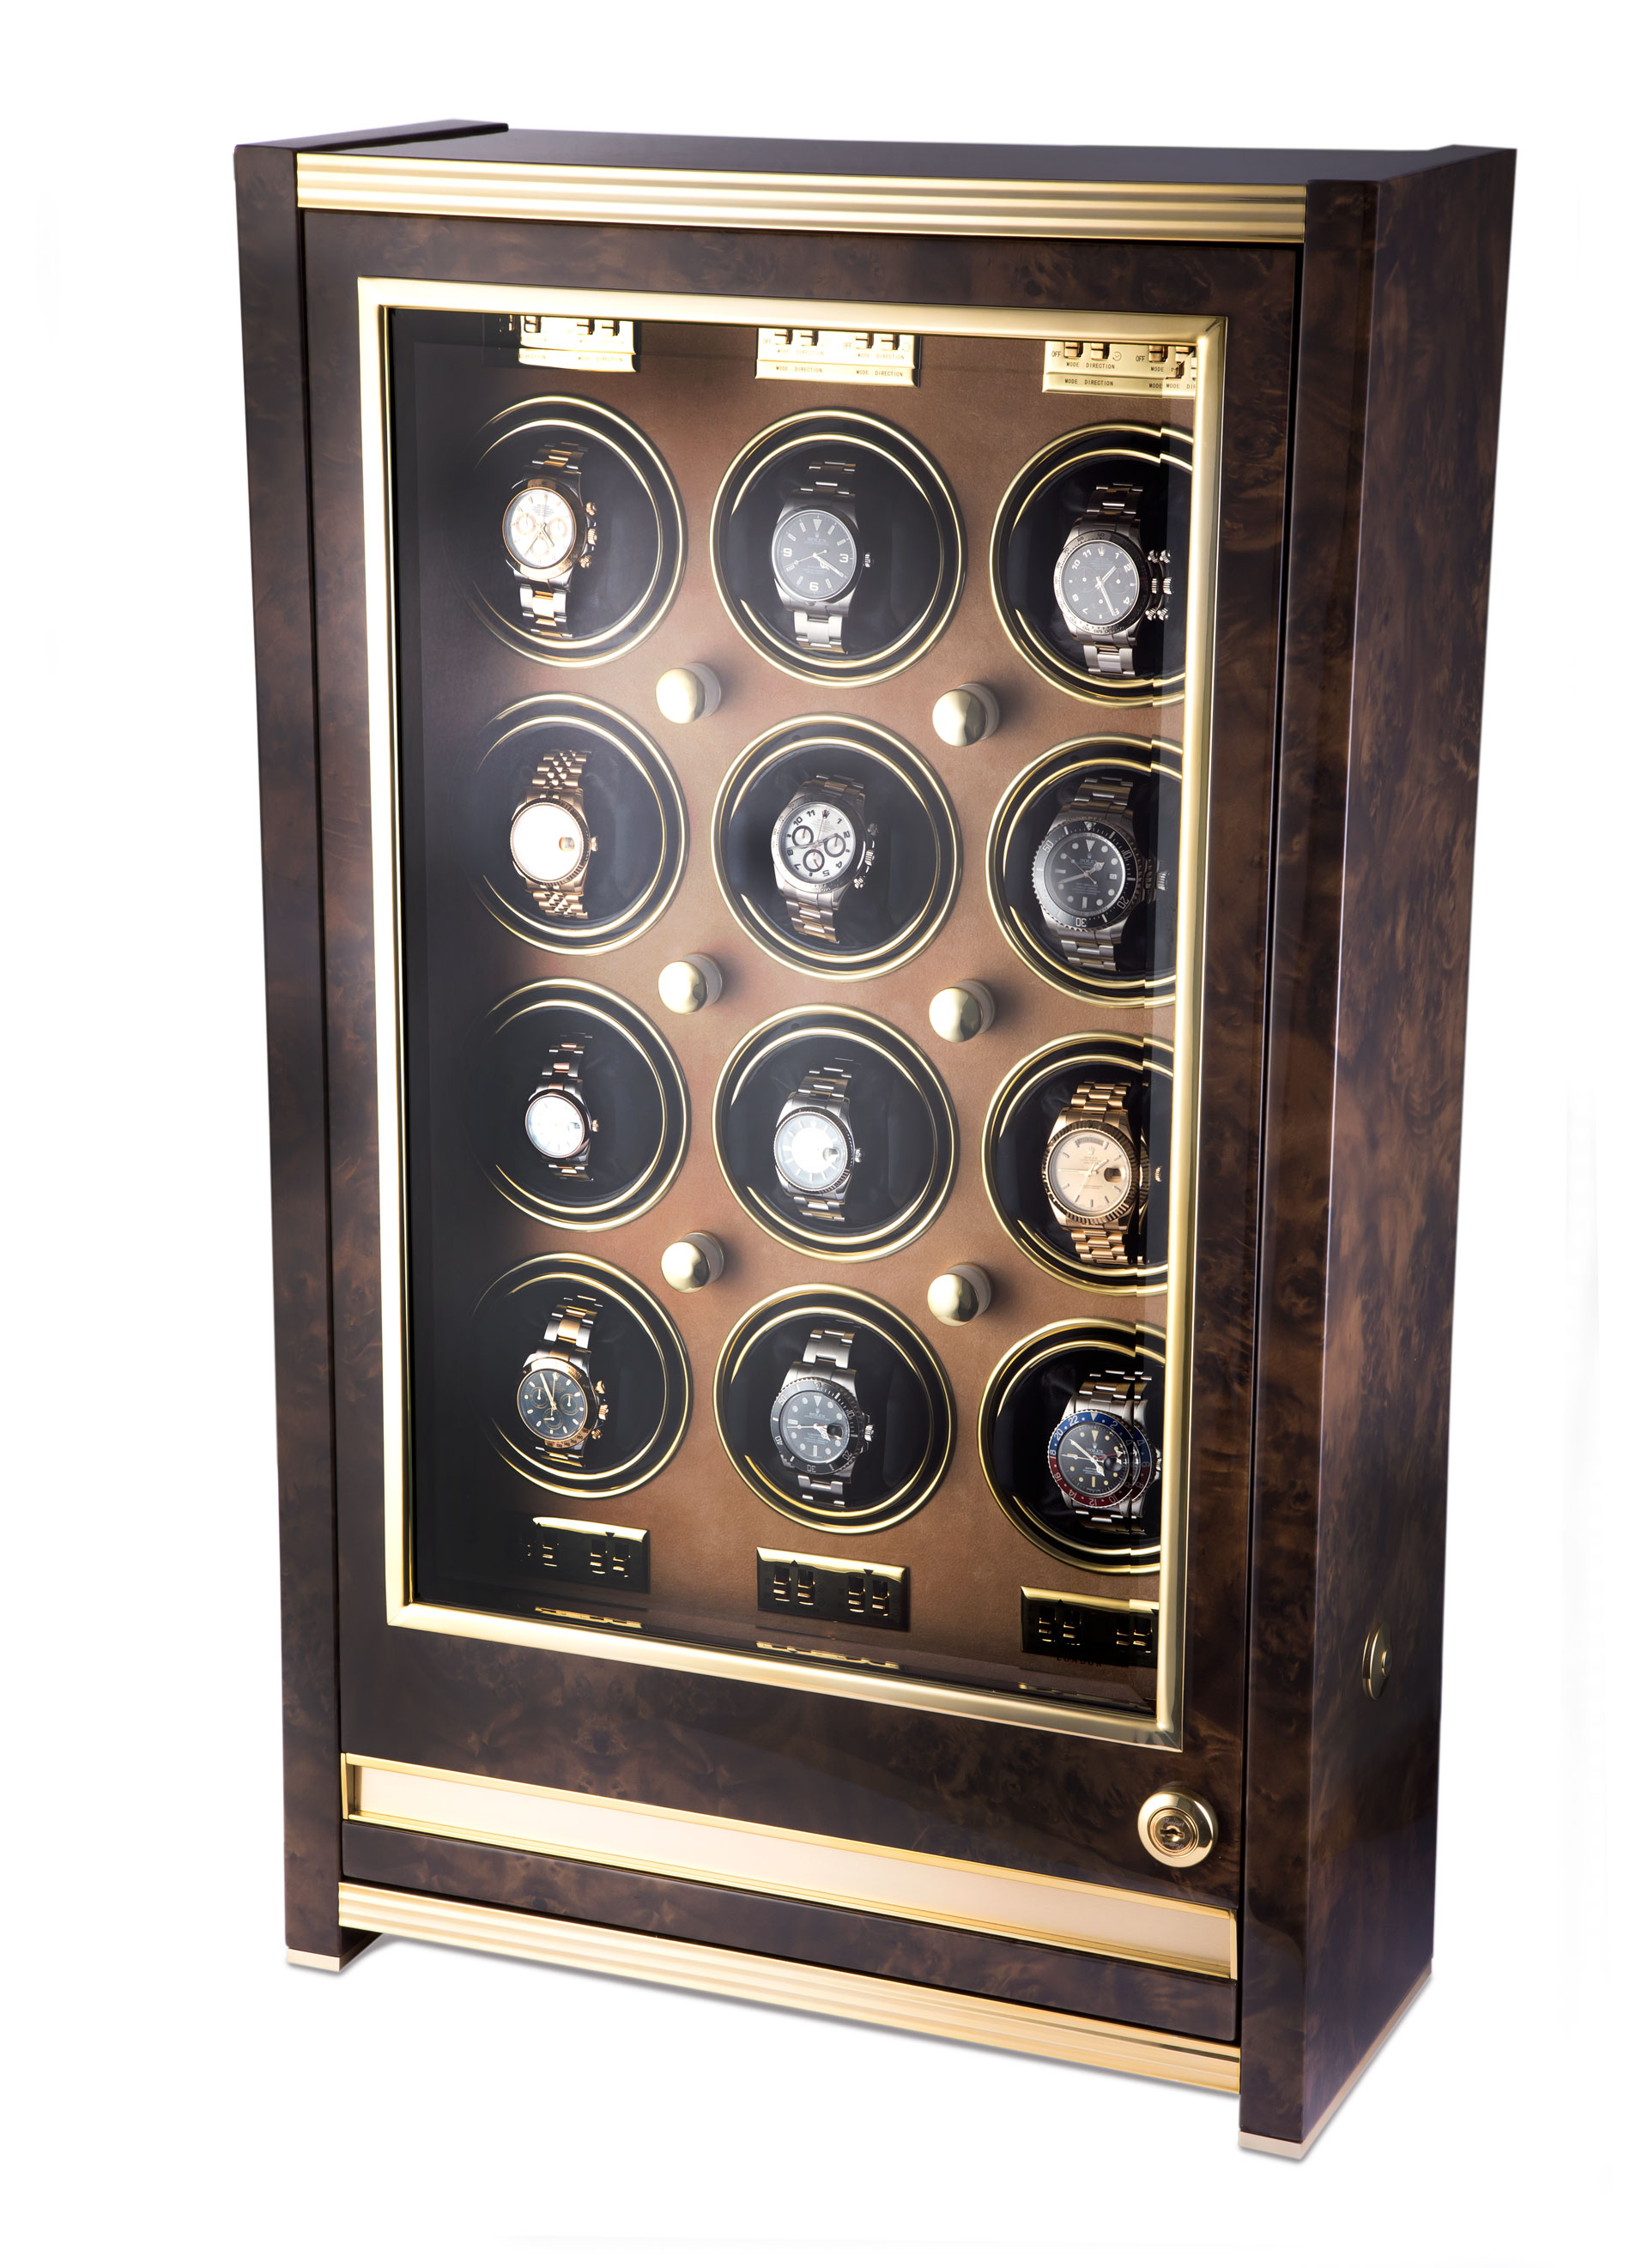 Rapport Paramount 12 Watch Winder Cabinet